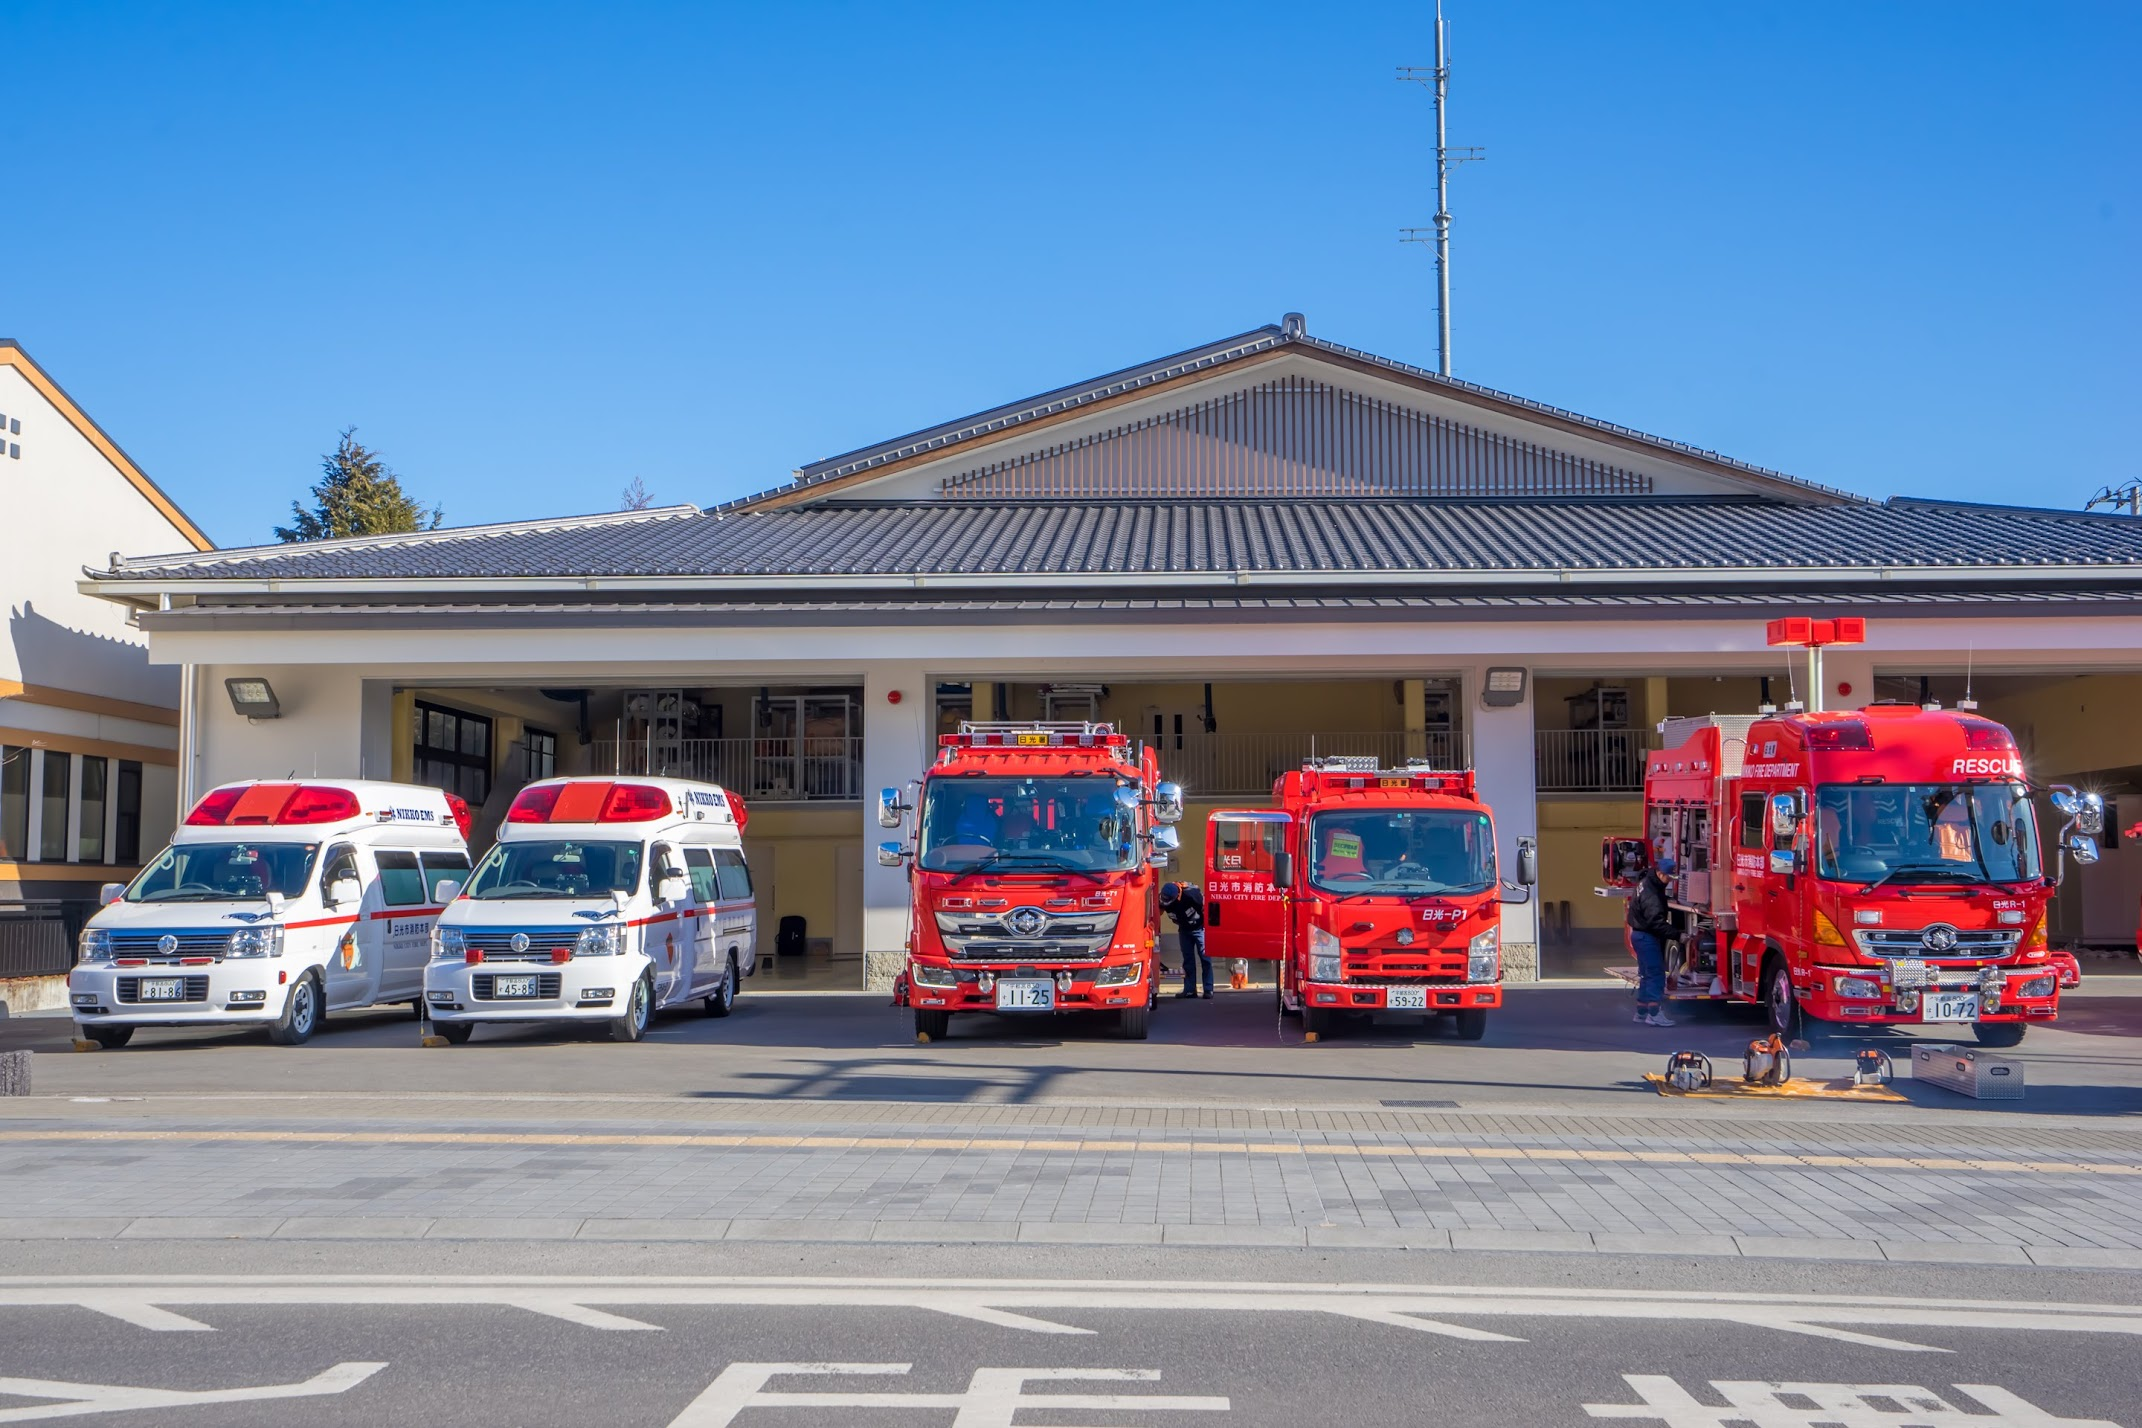 Nikko fire station3